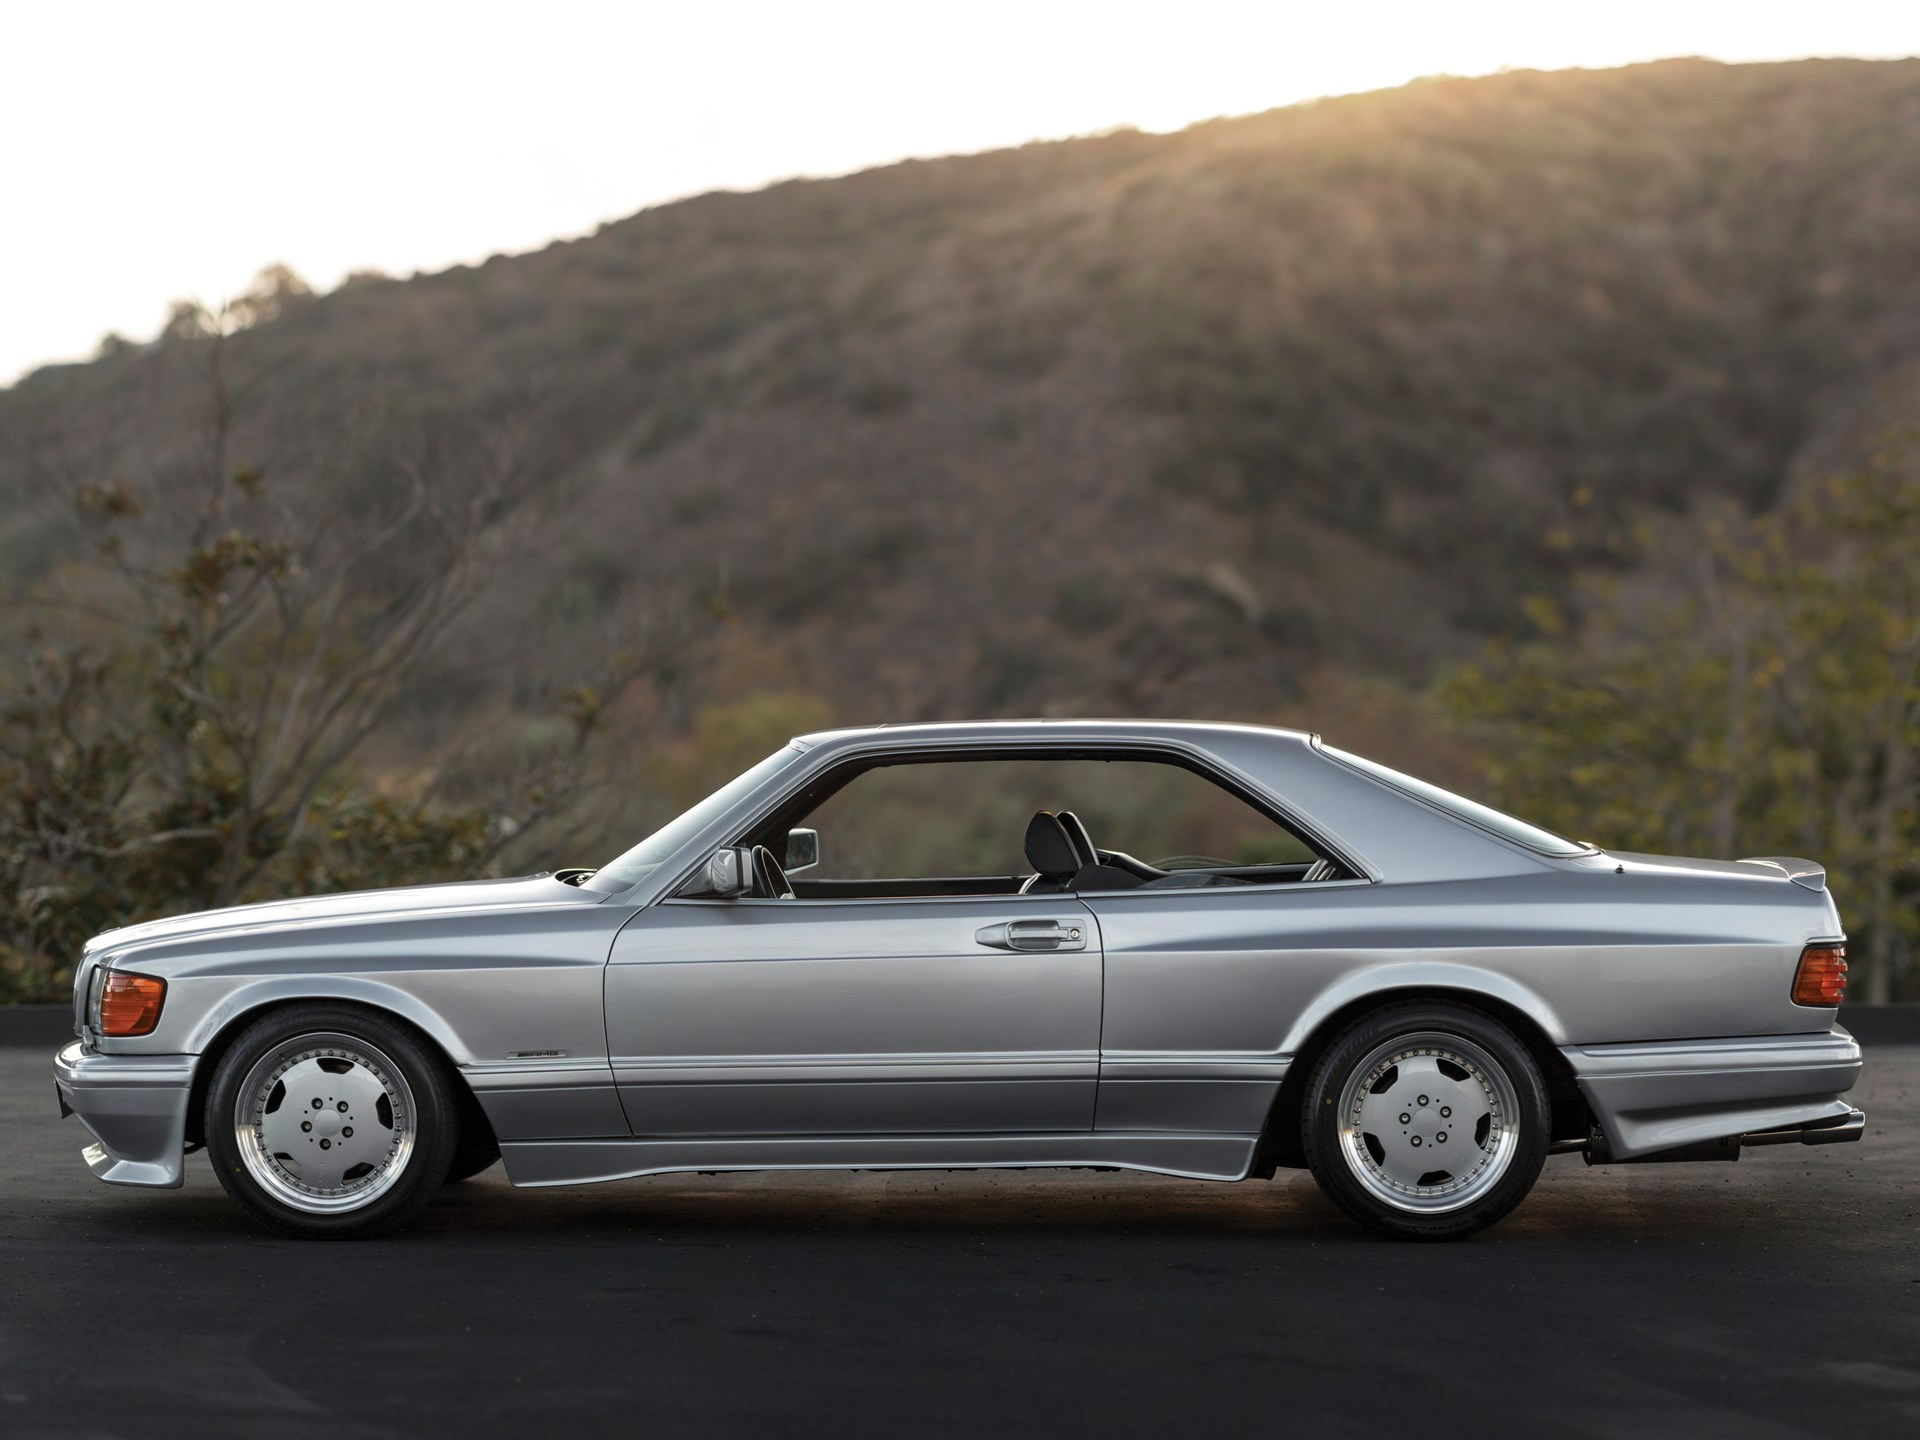 hight resolution of rm sotheby s 1989 mercedes benz 560 sec 6 0 amg wide body any diagram on an mercedes 500 sec engine need to find were all the